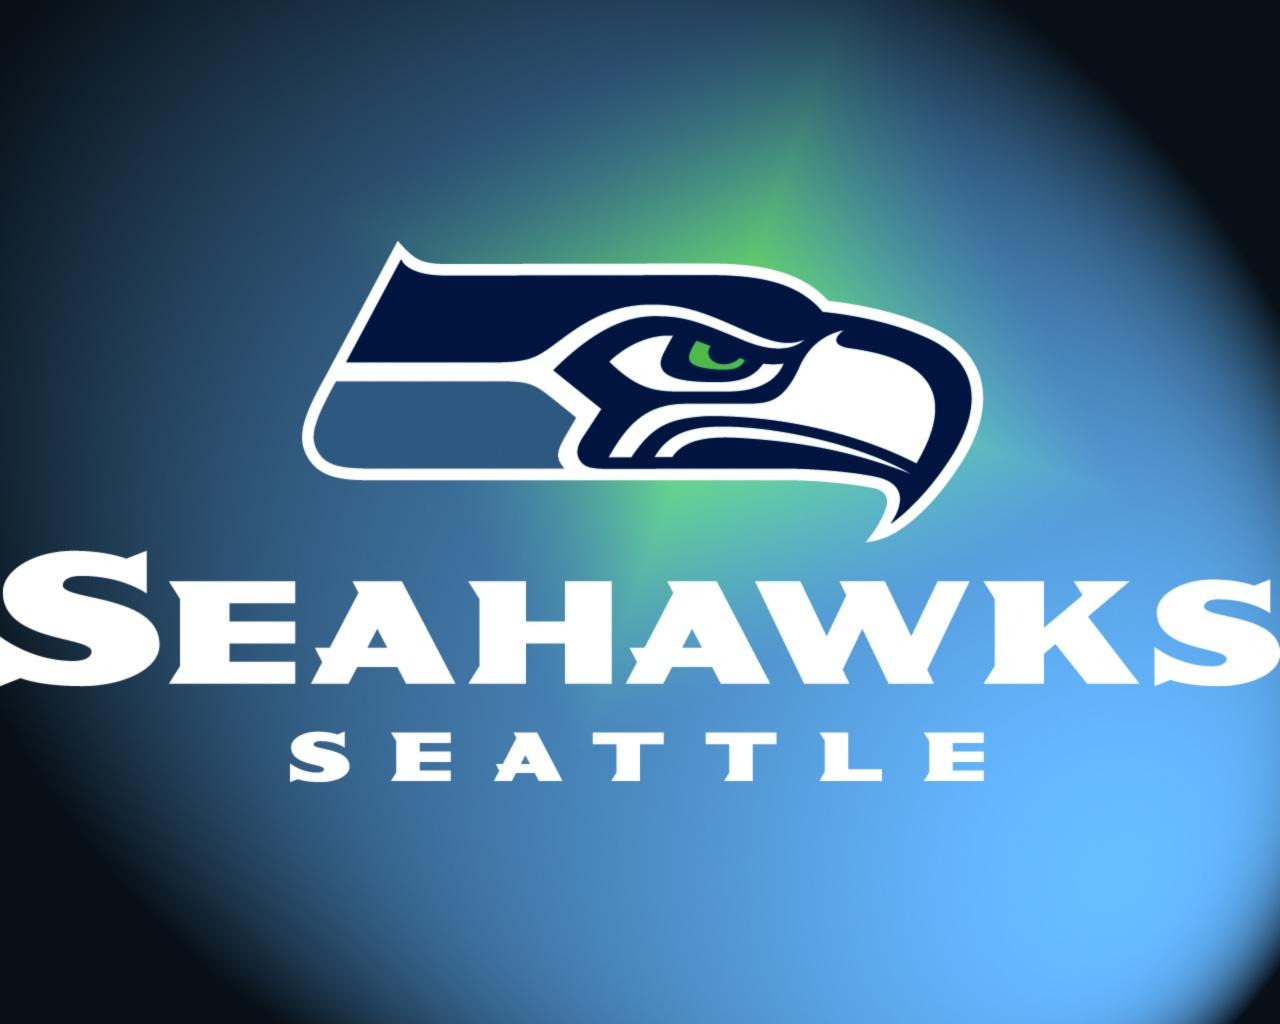 seahawks - photo #4